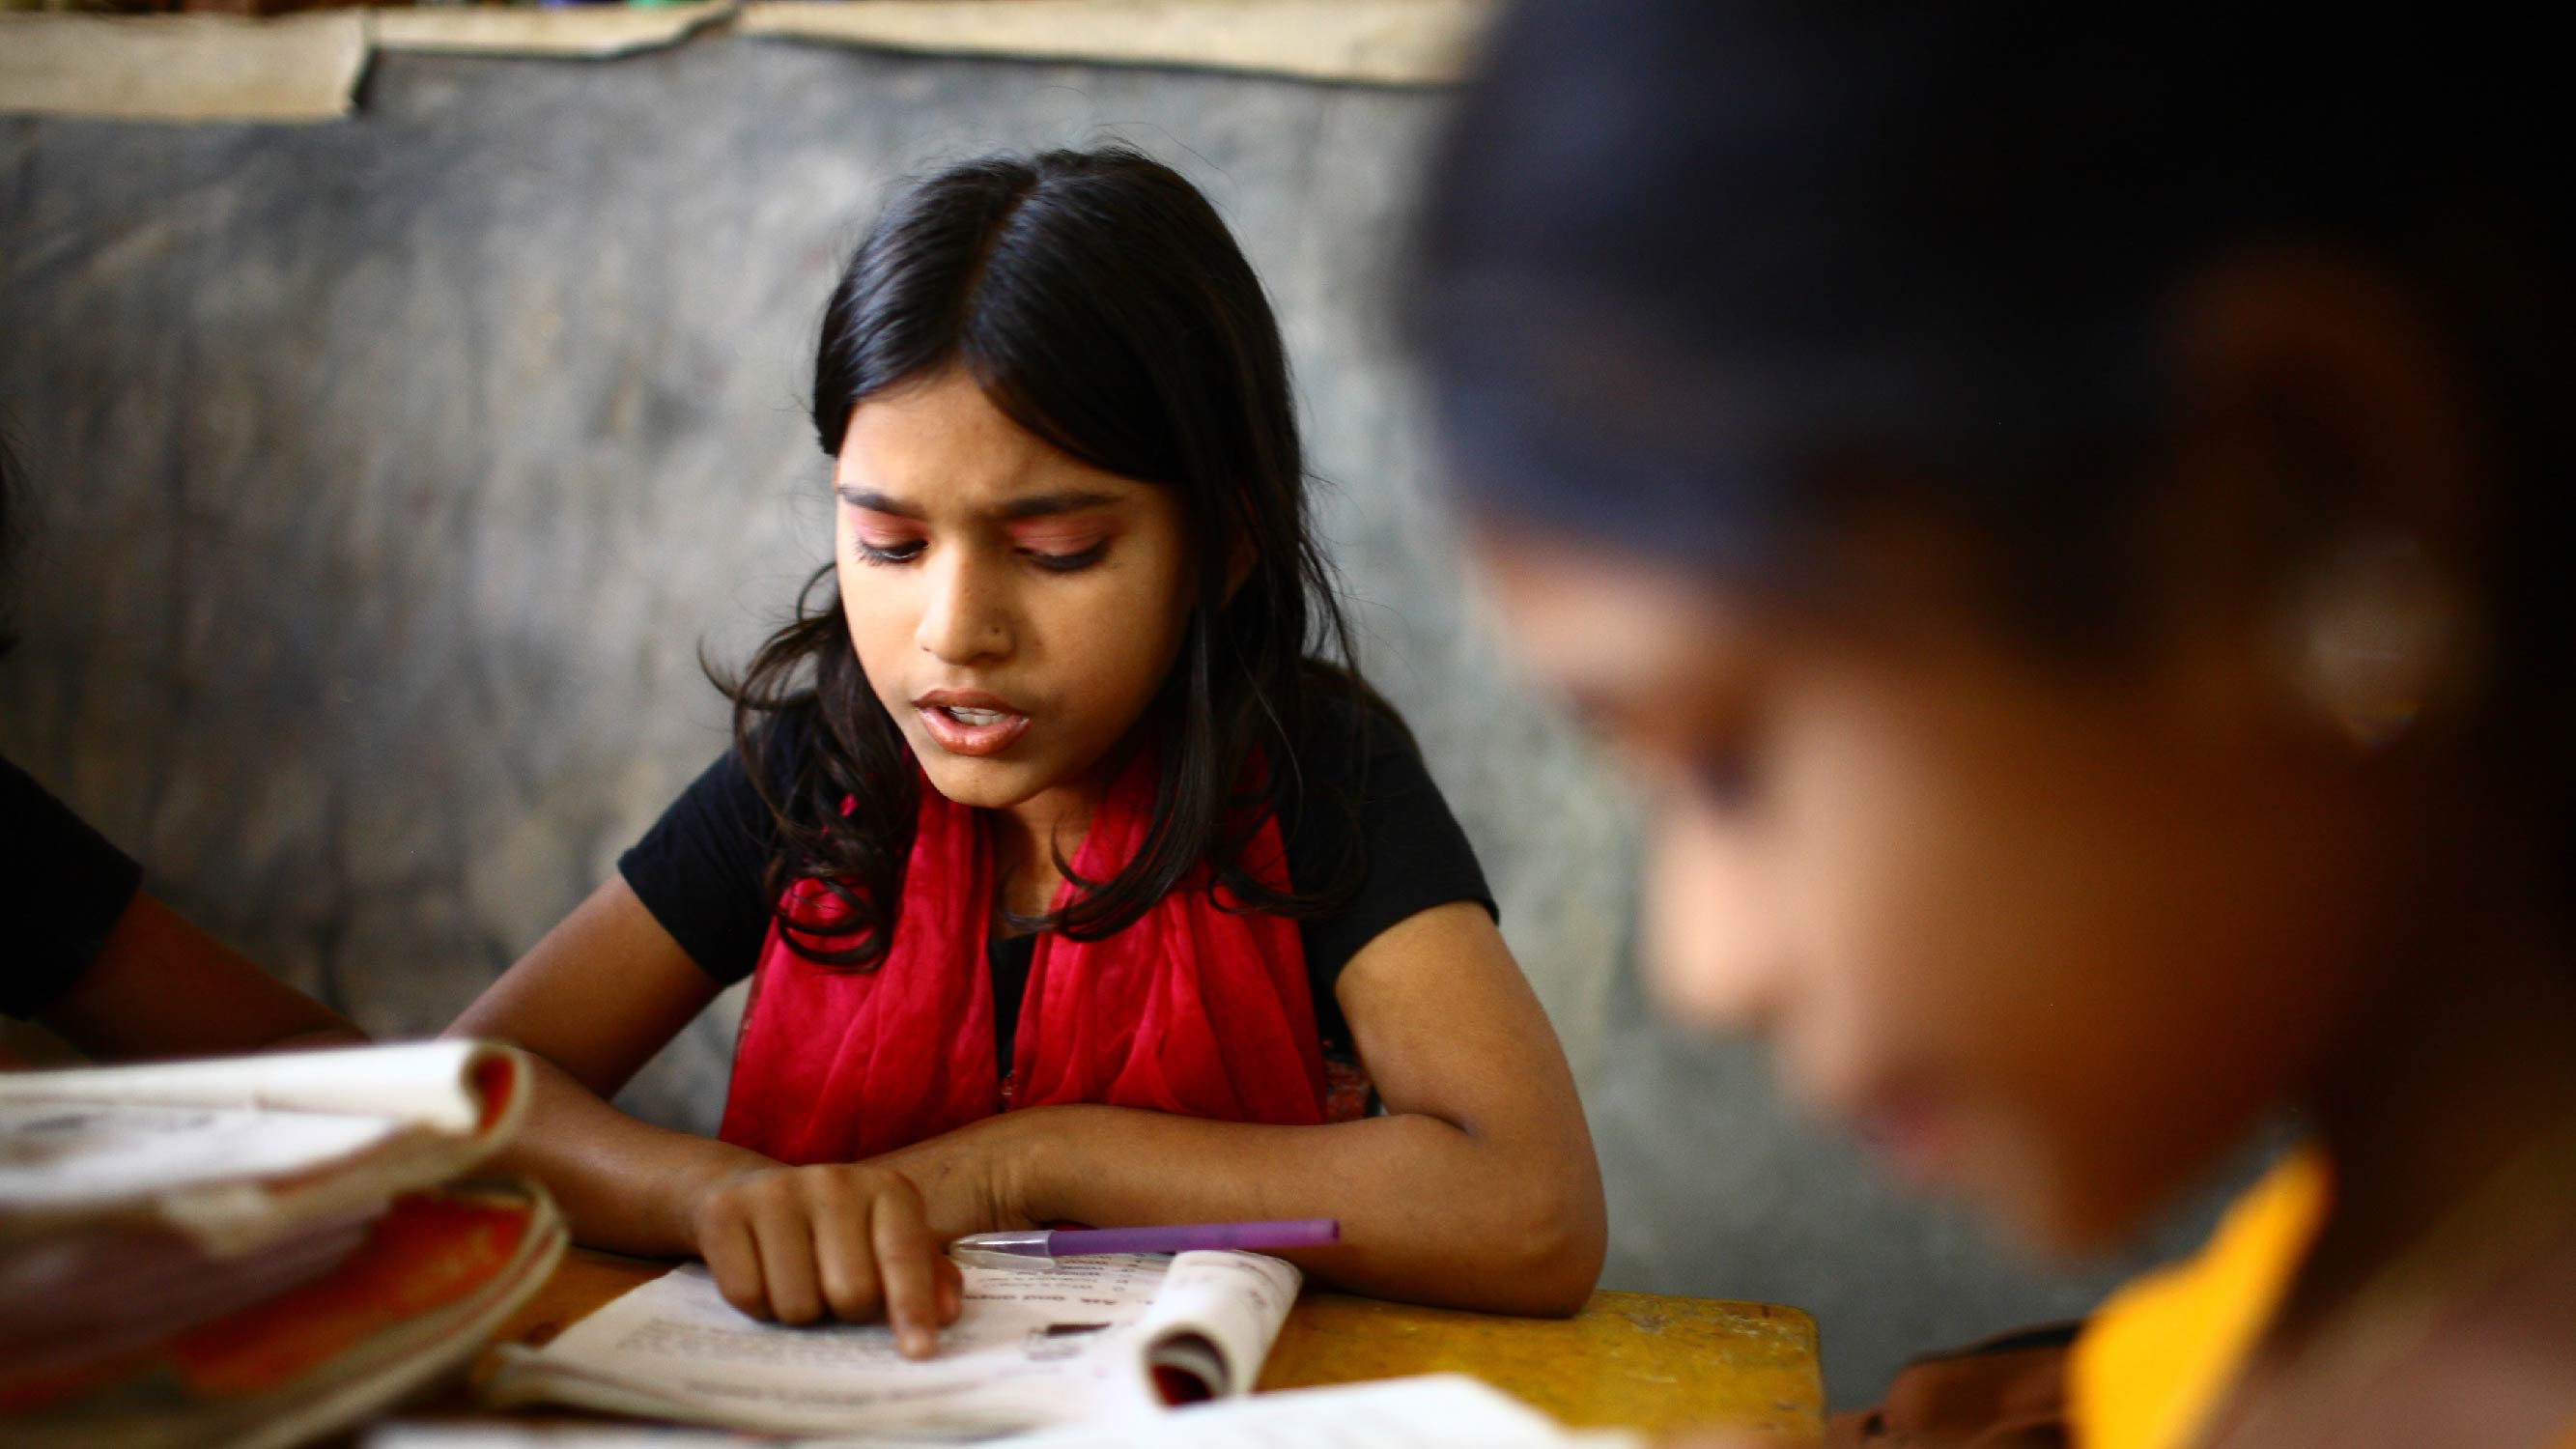 essay on india for childrens Incredible india | essay on incredible india  incredible india: speech , essay , paragraph , wallpapers filed under essay / paragraph / note, featured, india.